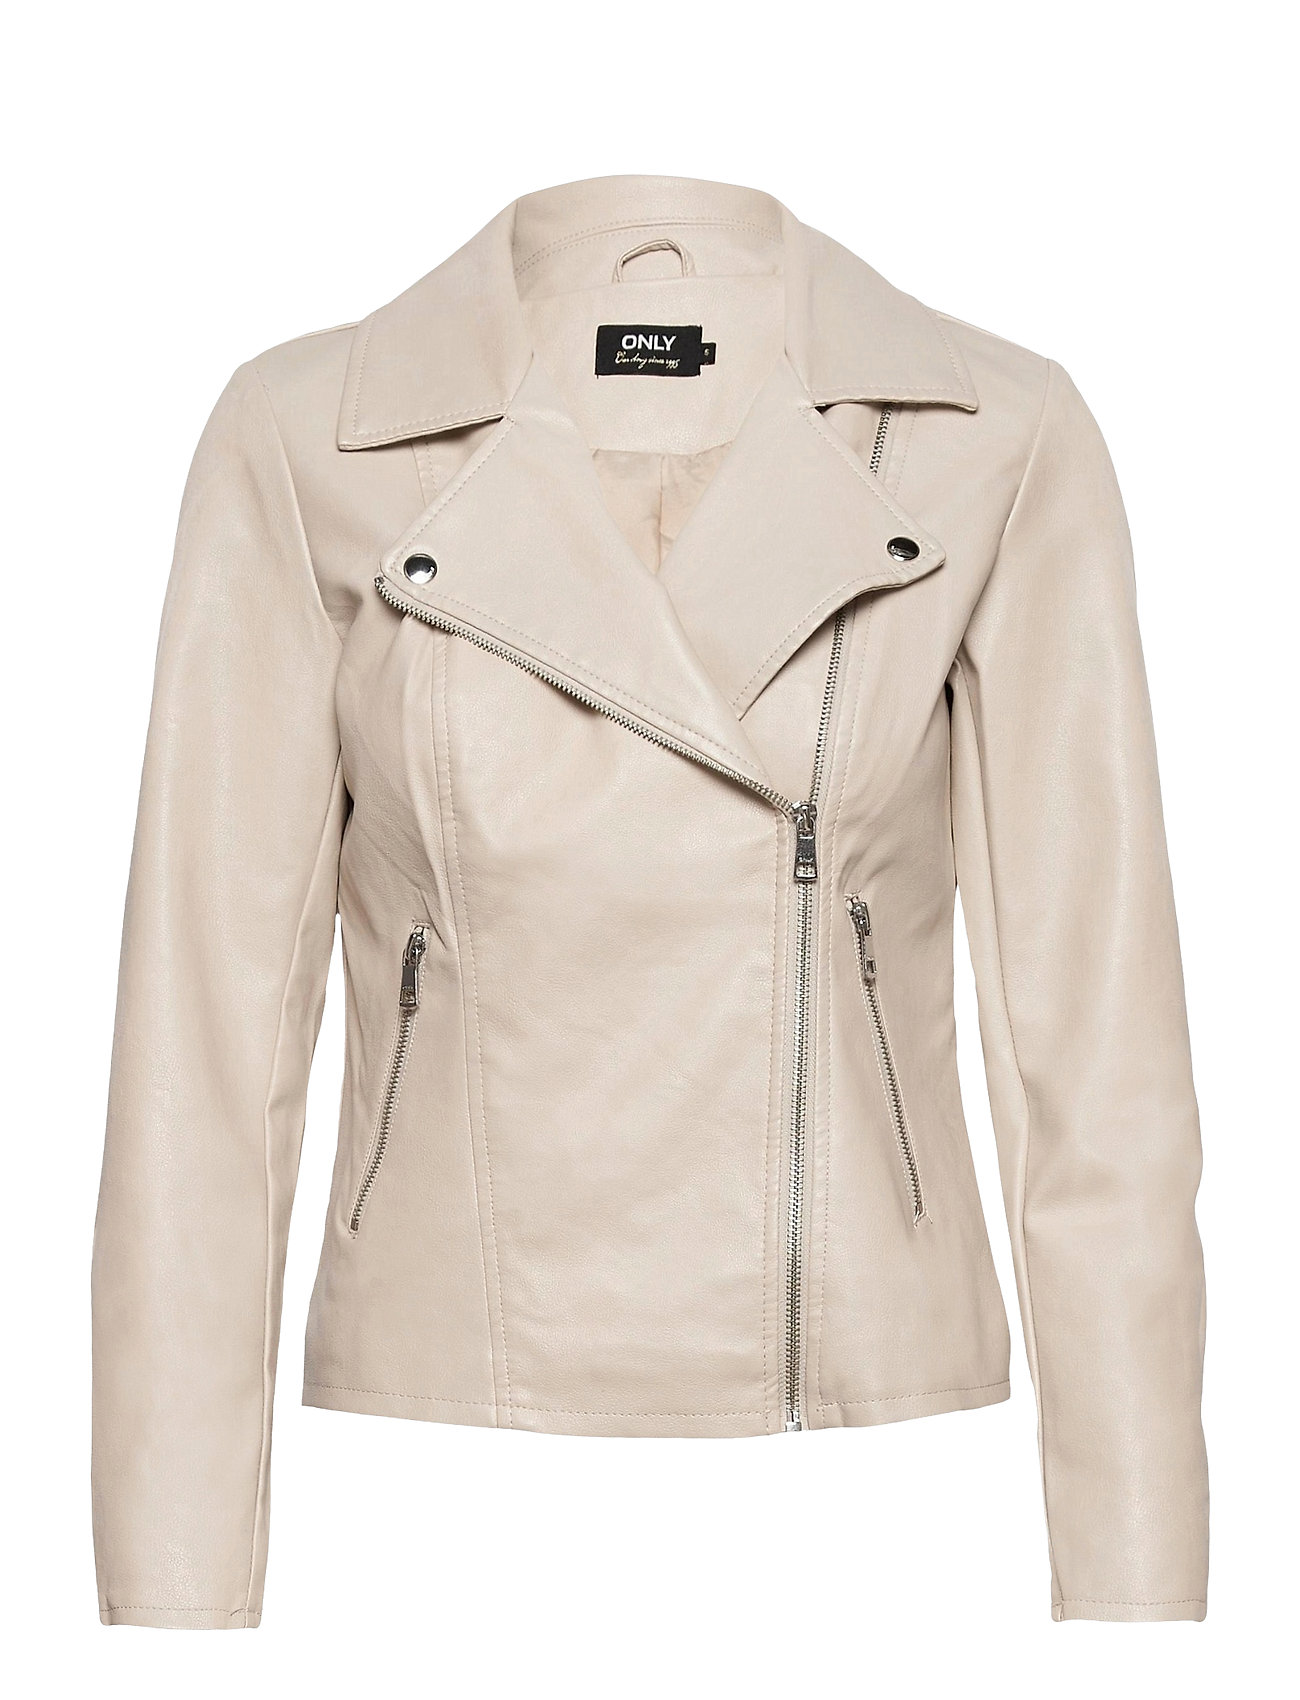 Image of Onlmelisa Faux Leather Biker Cc Otw Læderjakke Skindjakke Grå ONLY (3492736277)